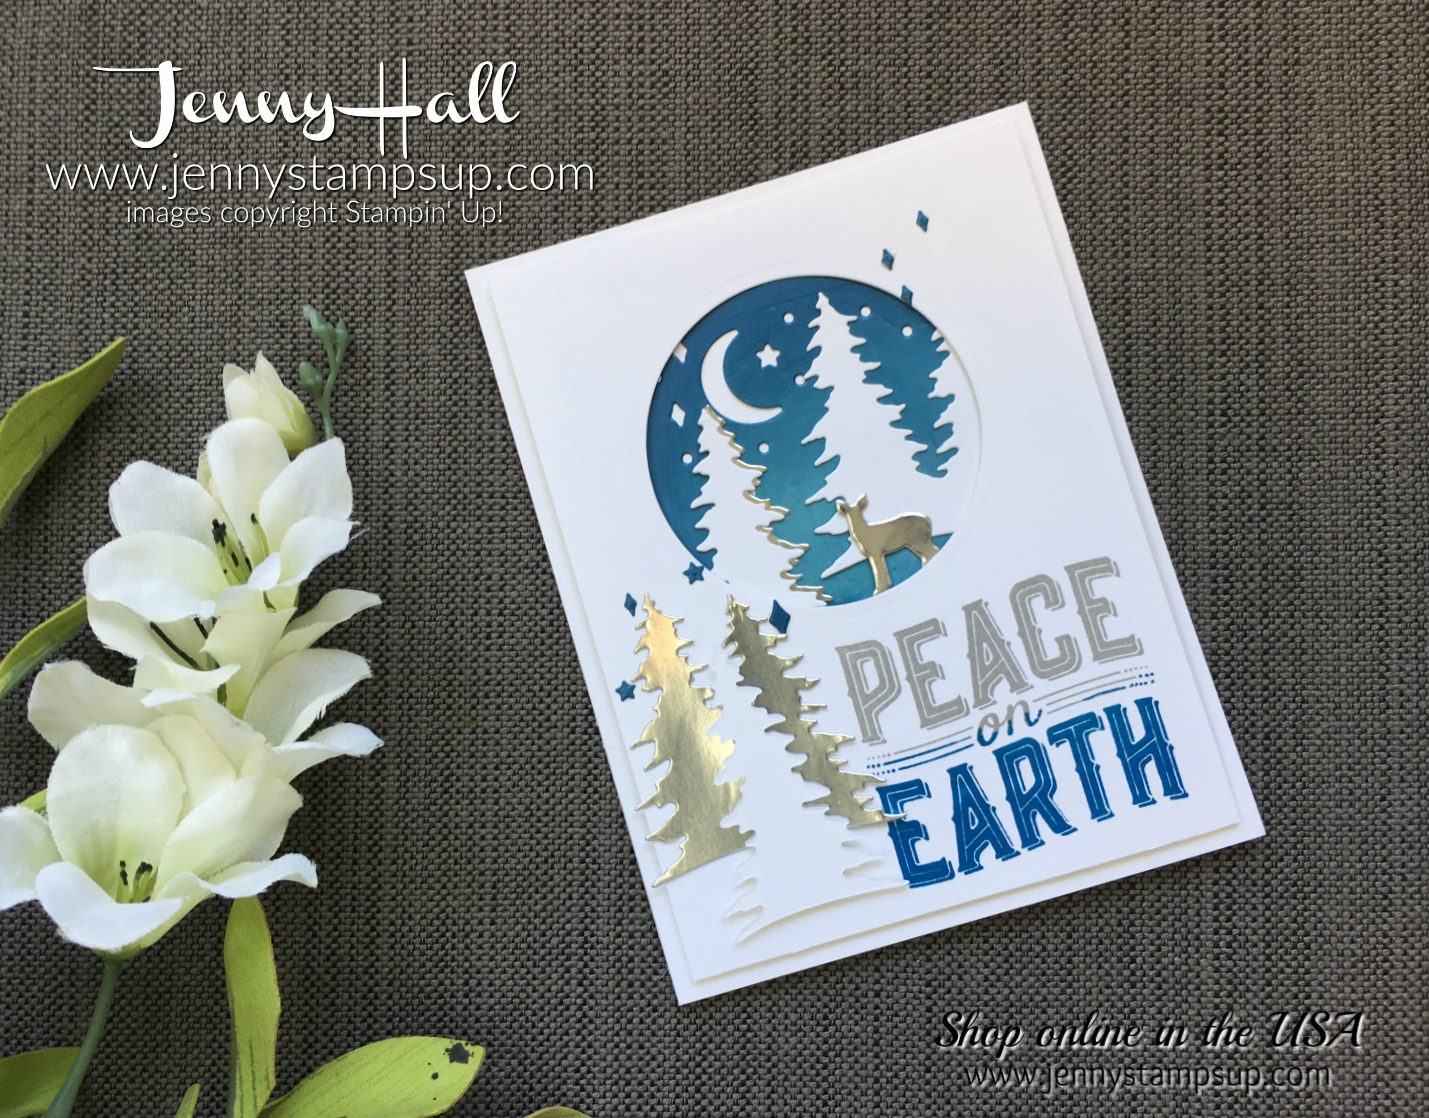 creating simple moonlight in a card by Jenny Hall at www.jennystampsup.com for cardmaking, scrapbooking, video tutorials and more, please visit me today